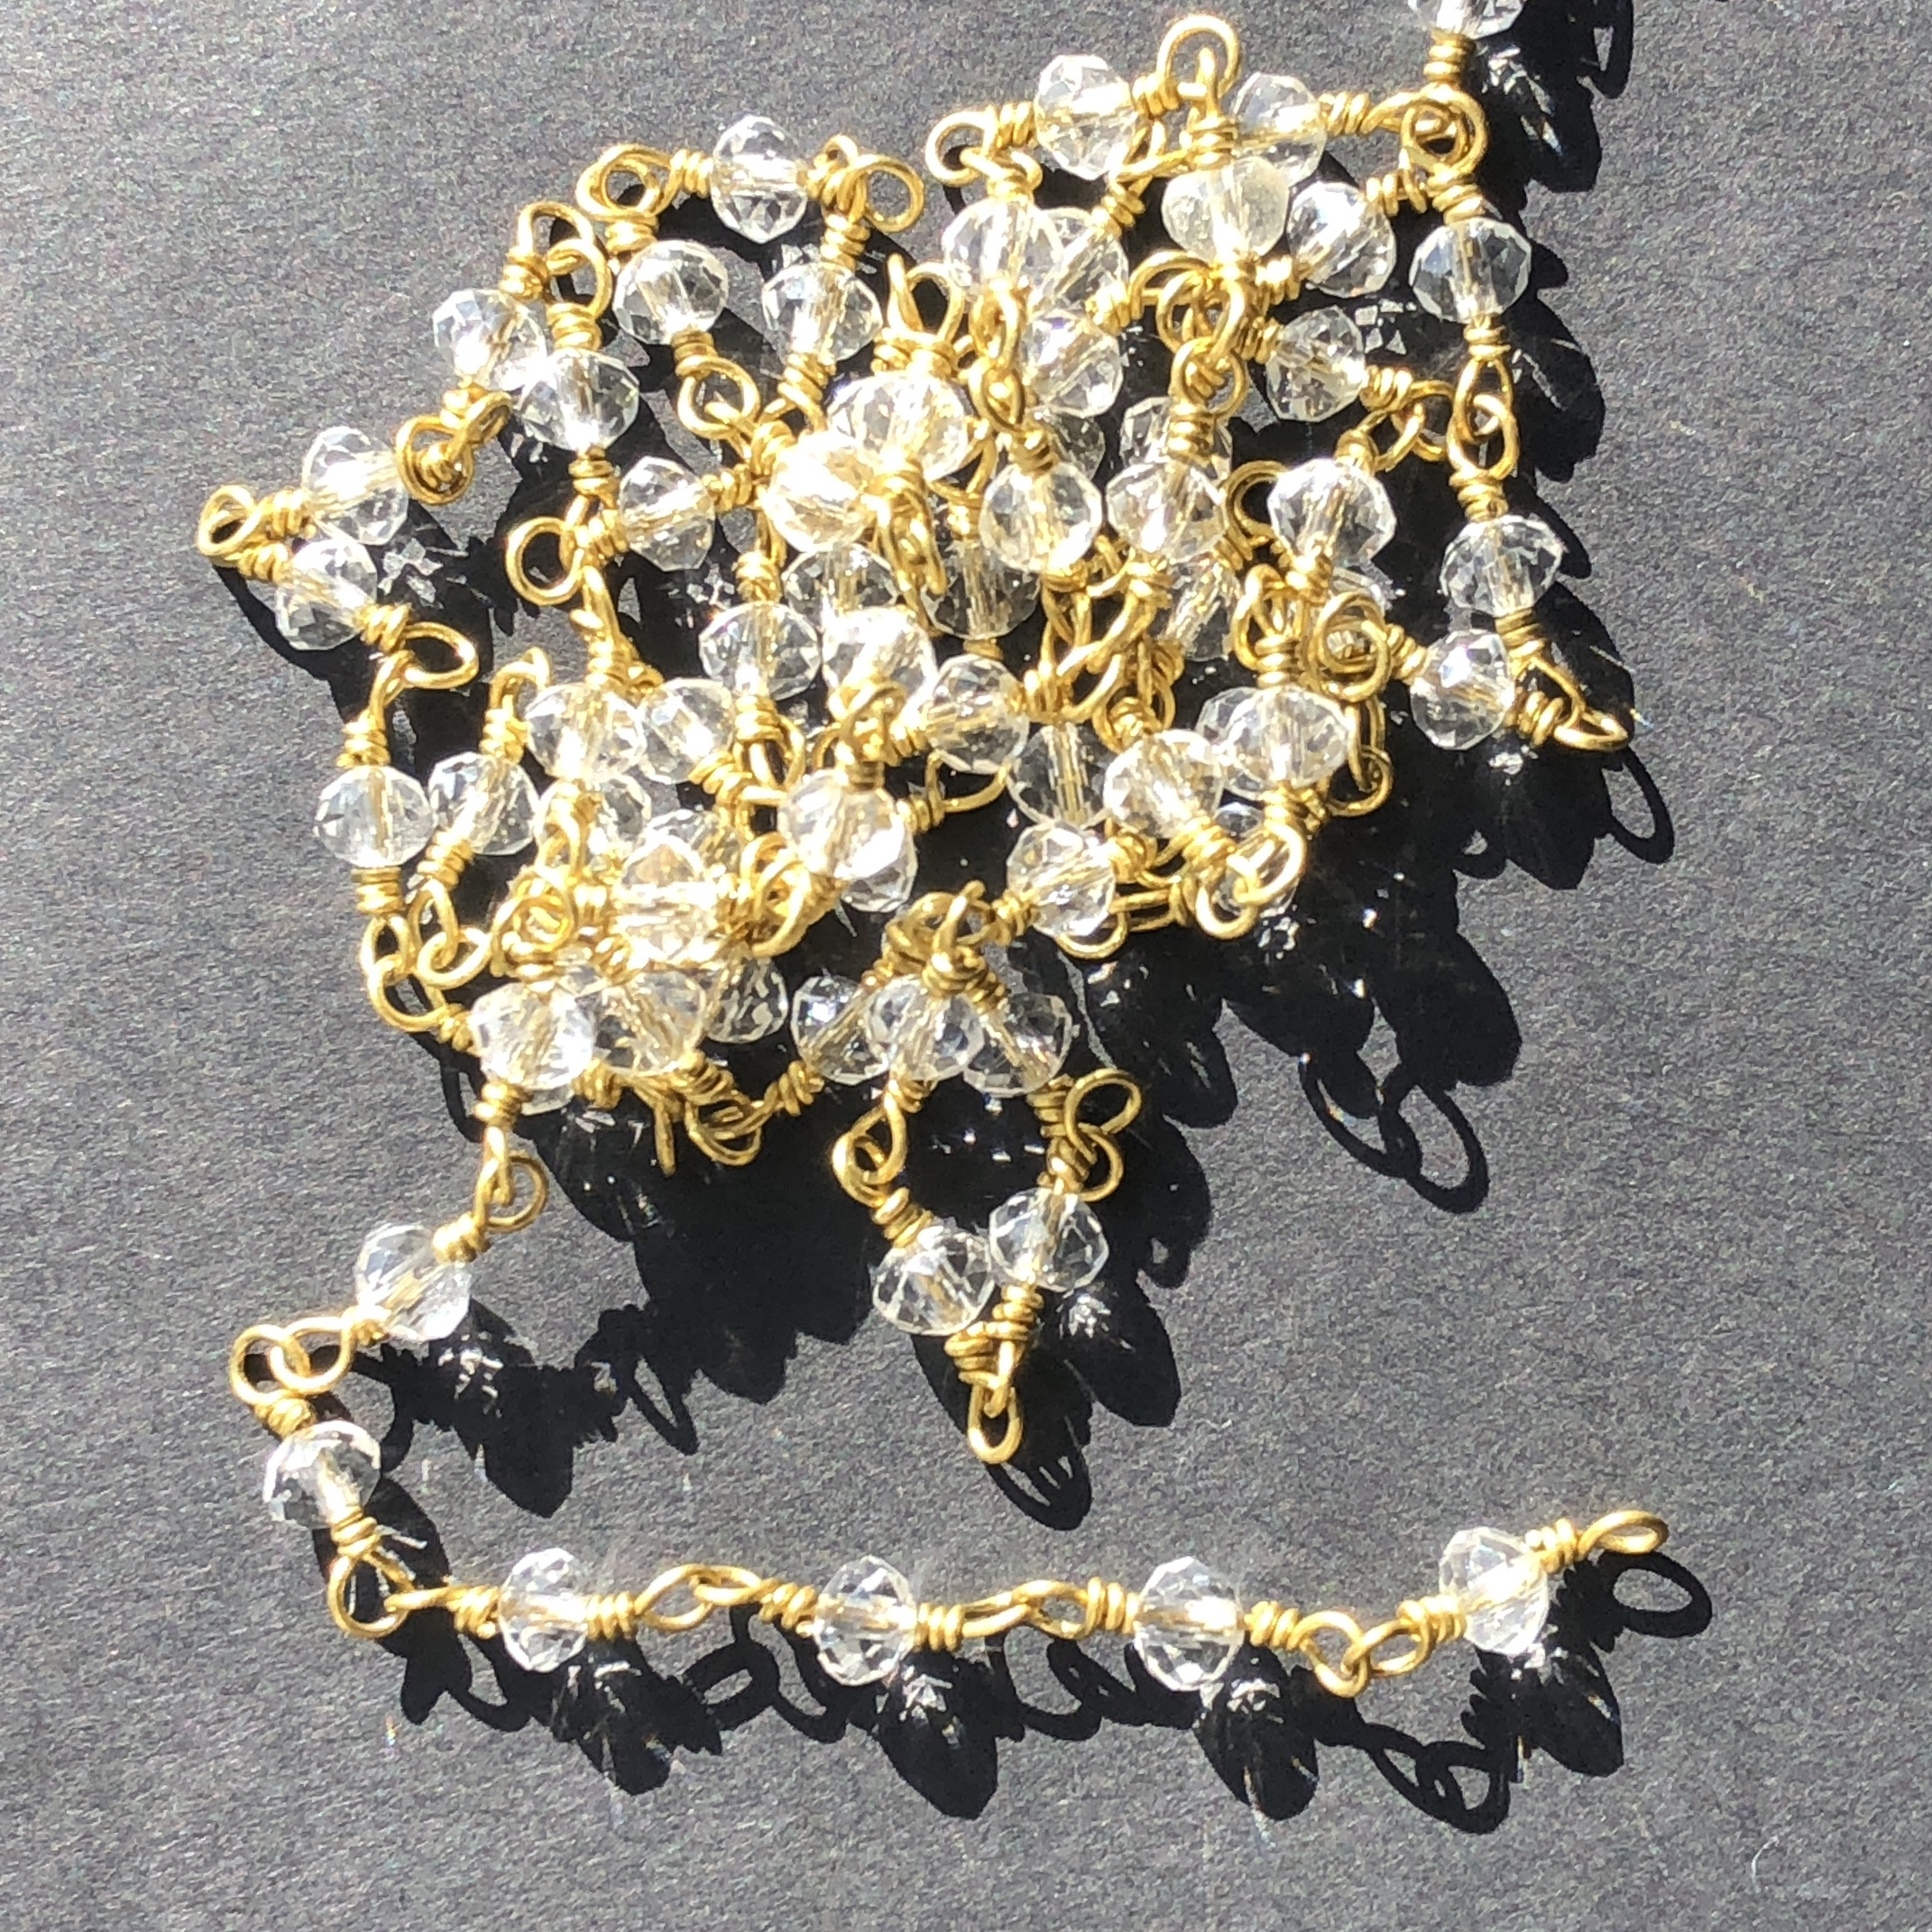 glass bead chain, bead and link chain, wire wrapped chain, antique gold chain, crystal, glass beads, jewelry chain, jewelry making supplies, vintage jewelry supplies, bead chain, handmade chain, glass beads, chain, beaded chain, 07837